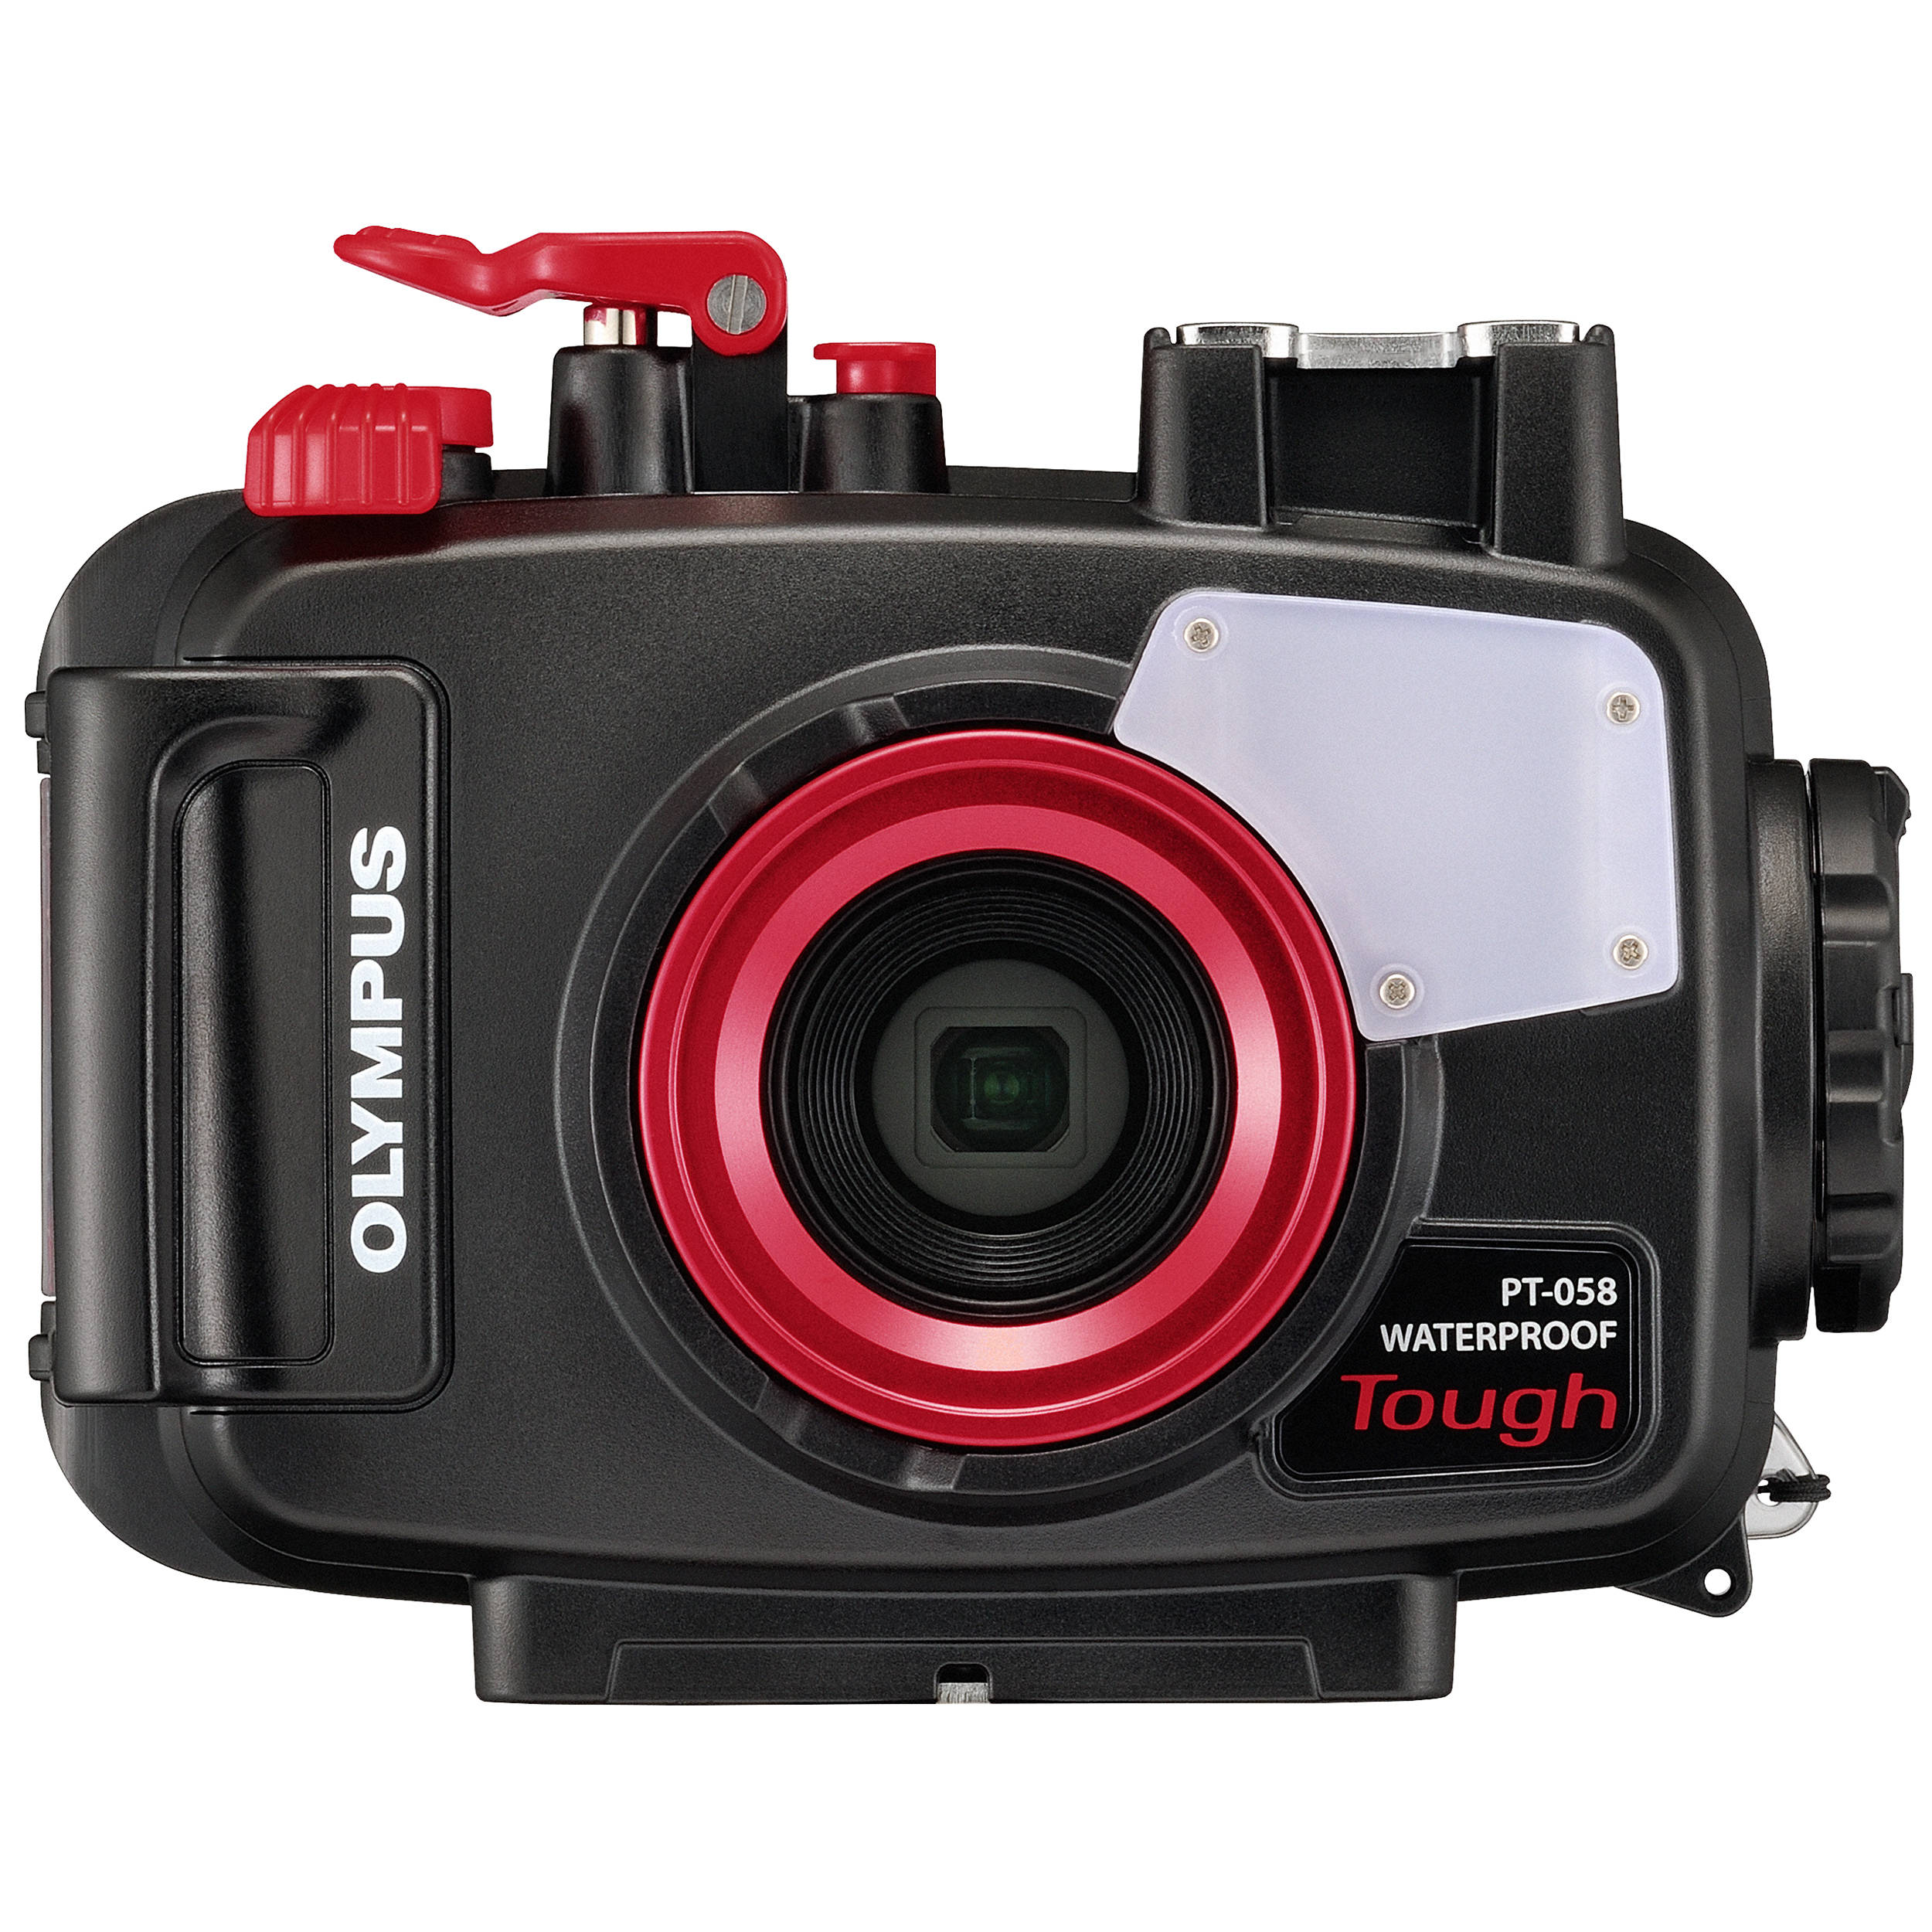 Camera for underwater shooting. Underwater camera - reviews, prices 76